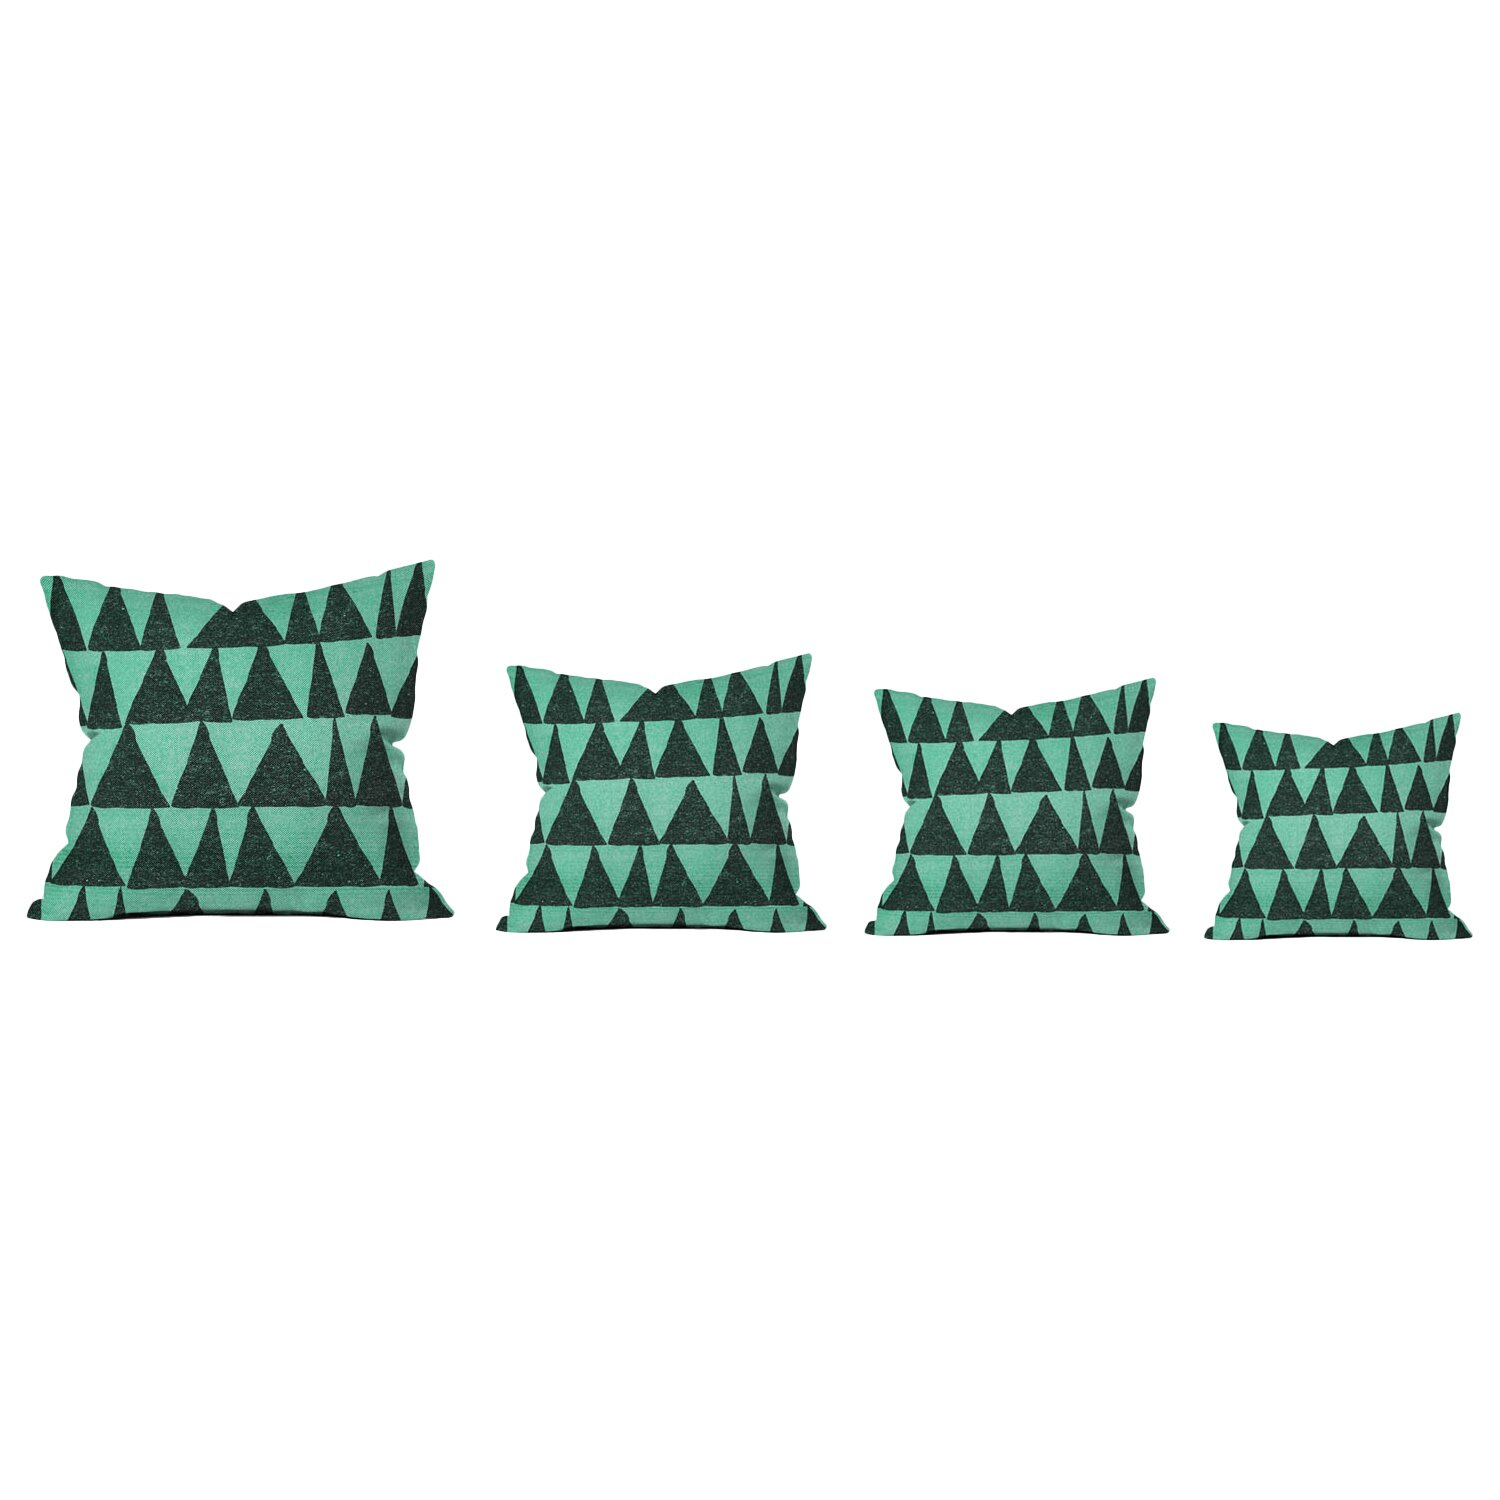 DENY Designs Nick Nelson Analogous Shapes Indoor/Outdoor Throw Pillow & Reviews Wayfair